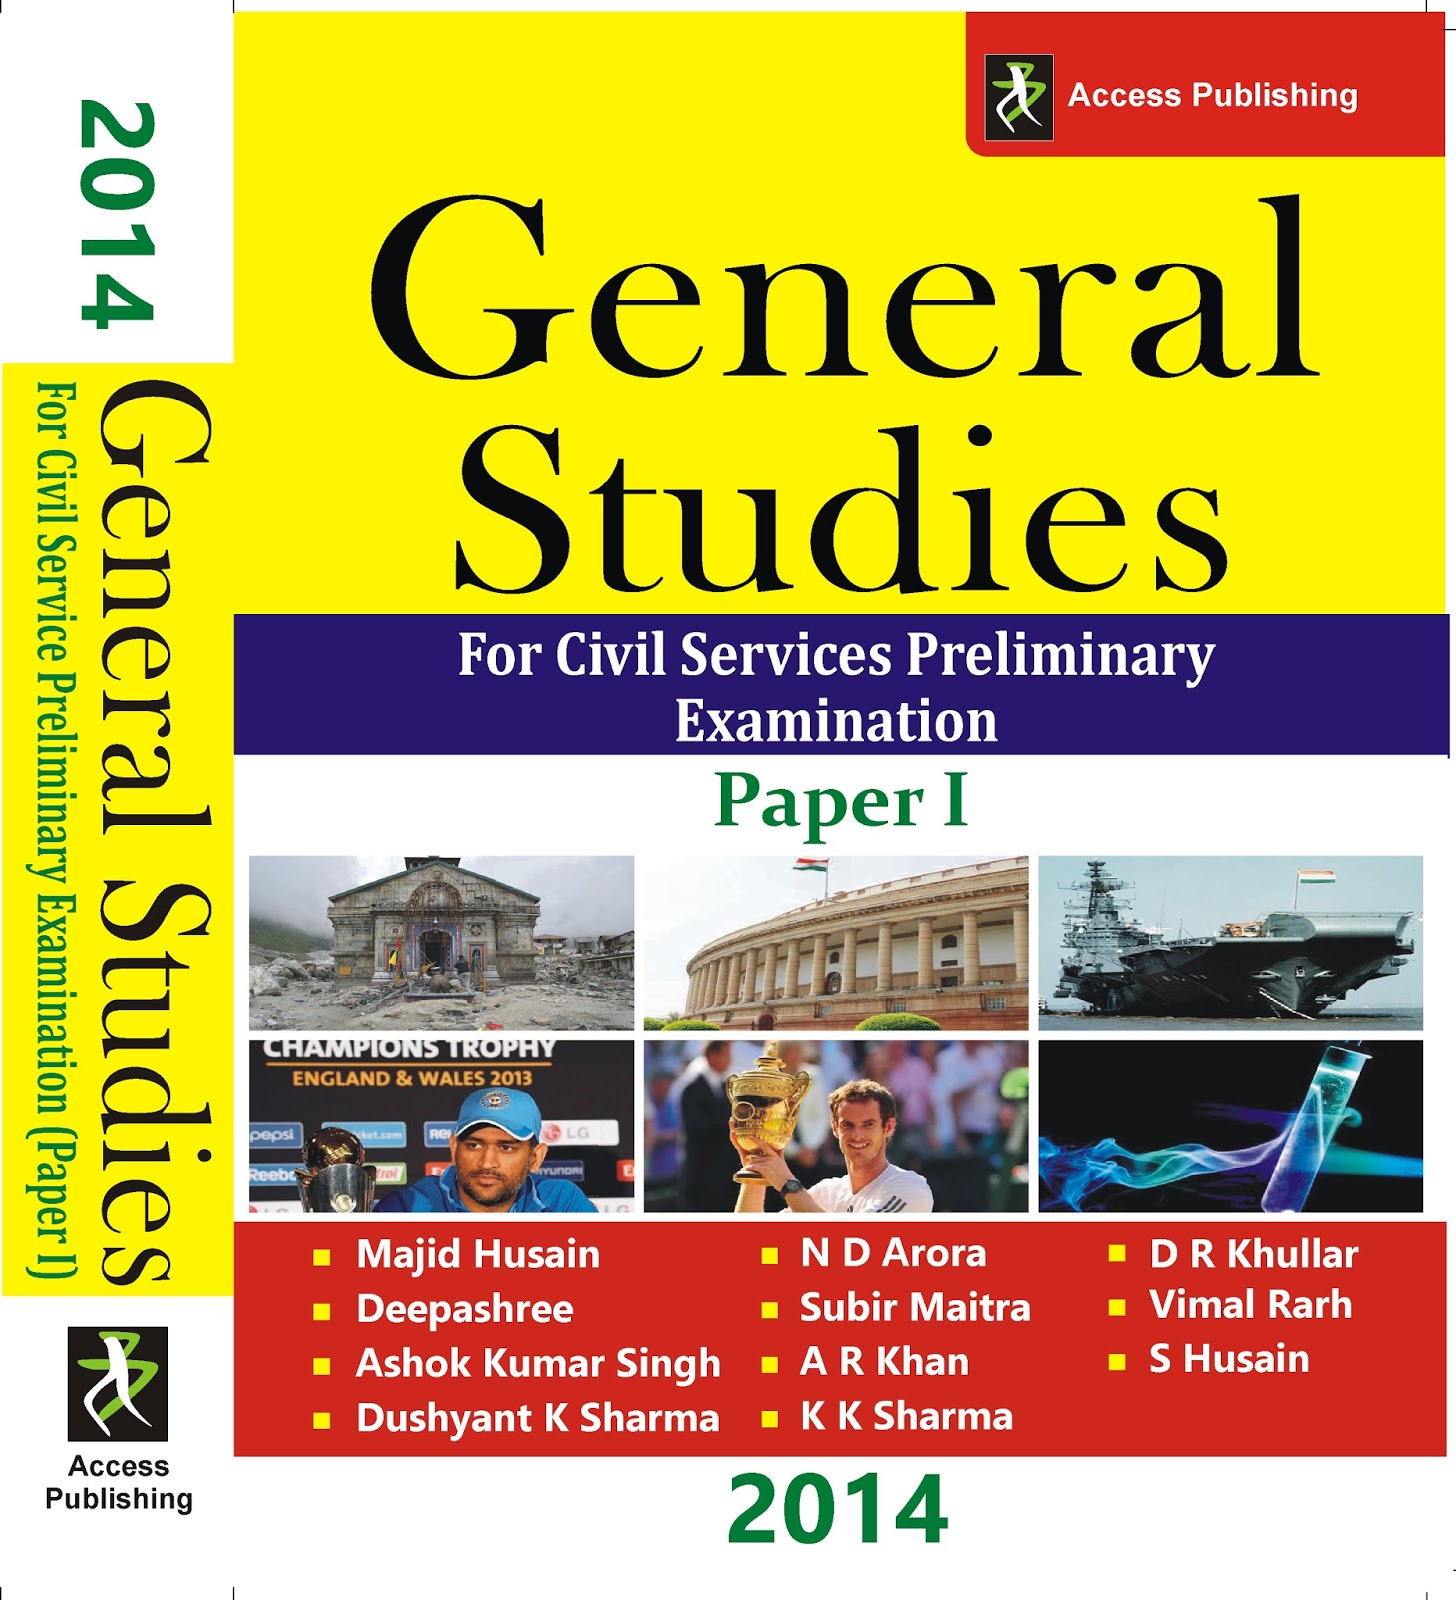 General Studies what are subjects